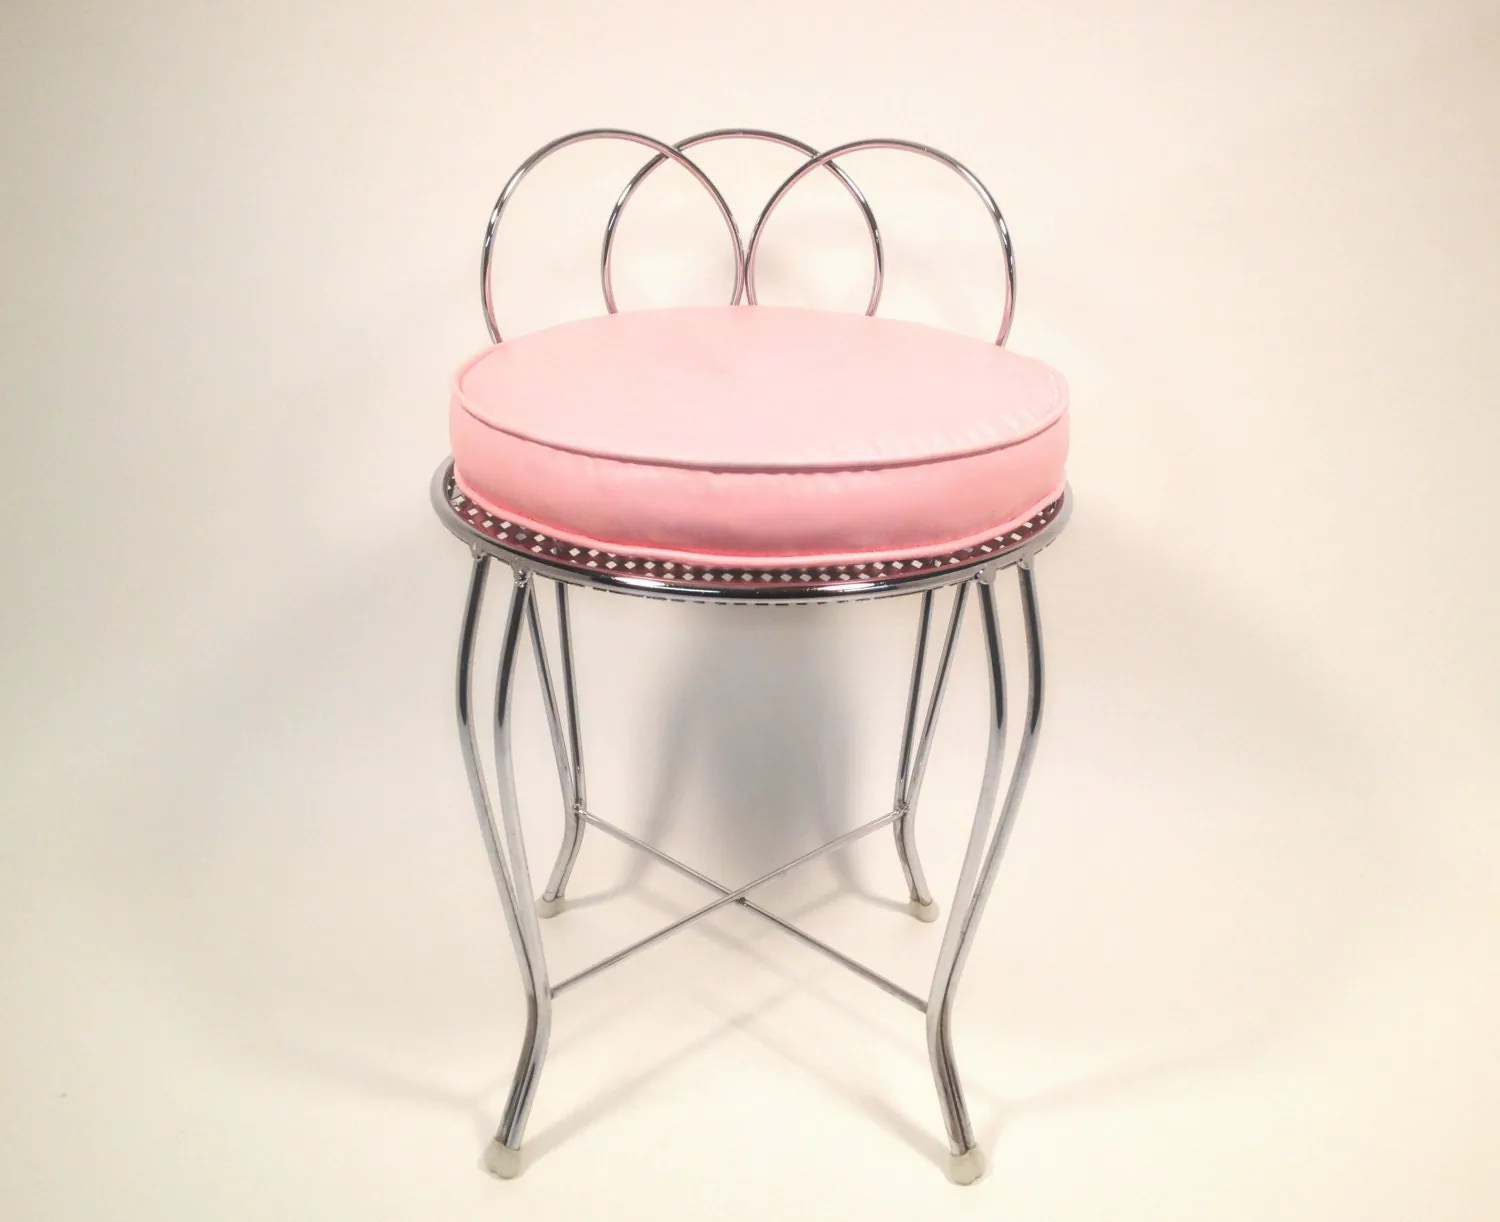 Metal Makeup Vanity Table Set Mid Century Metal Vanity Chair With Pink Cushion Vintage